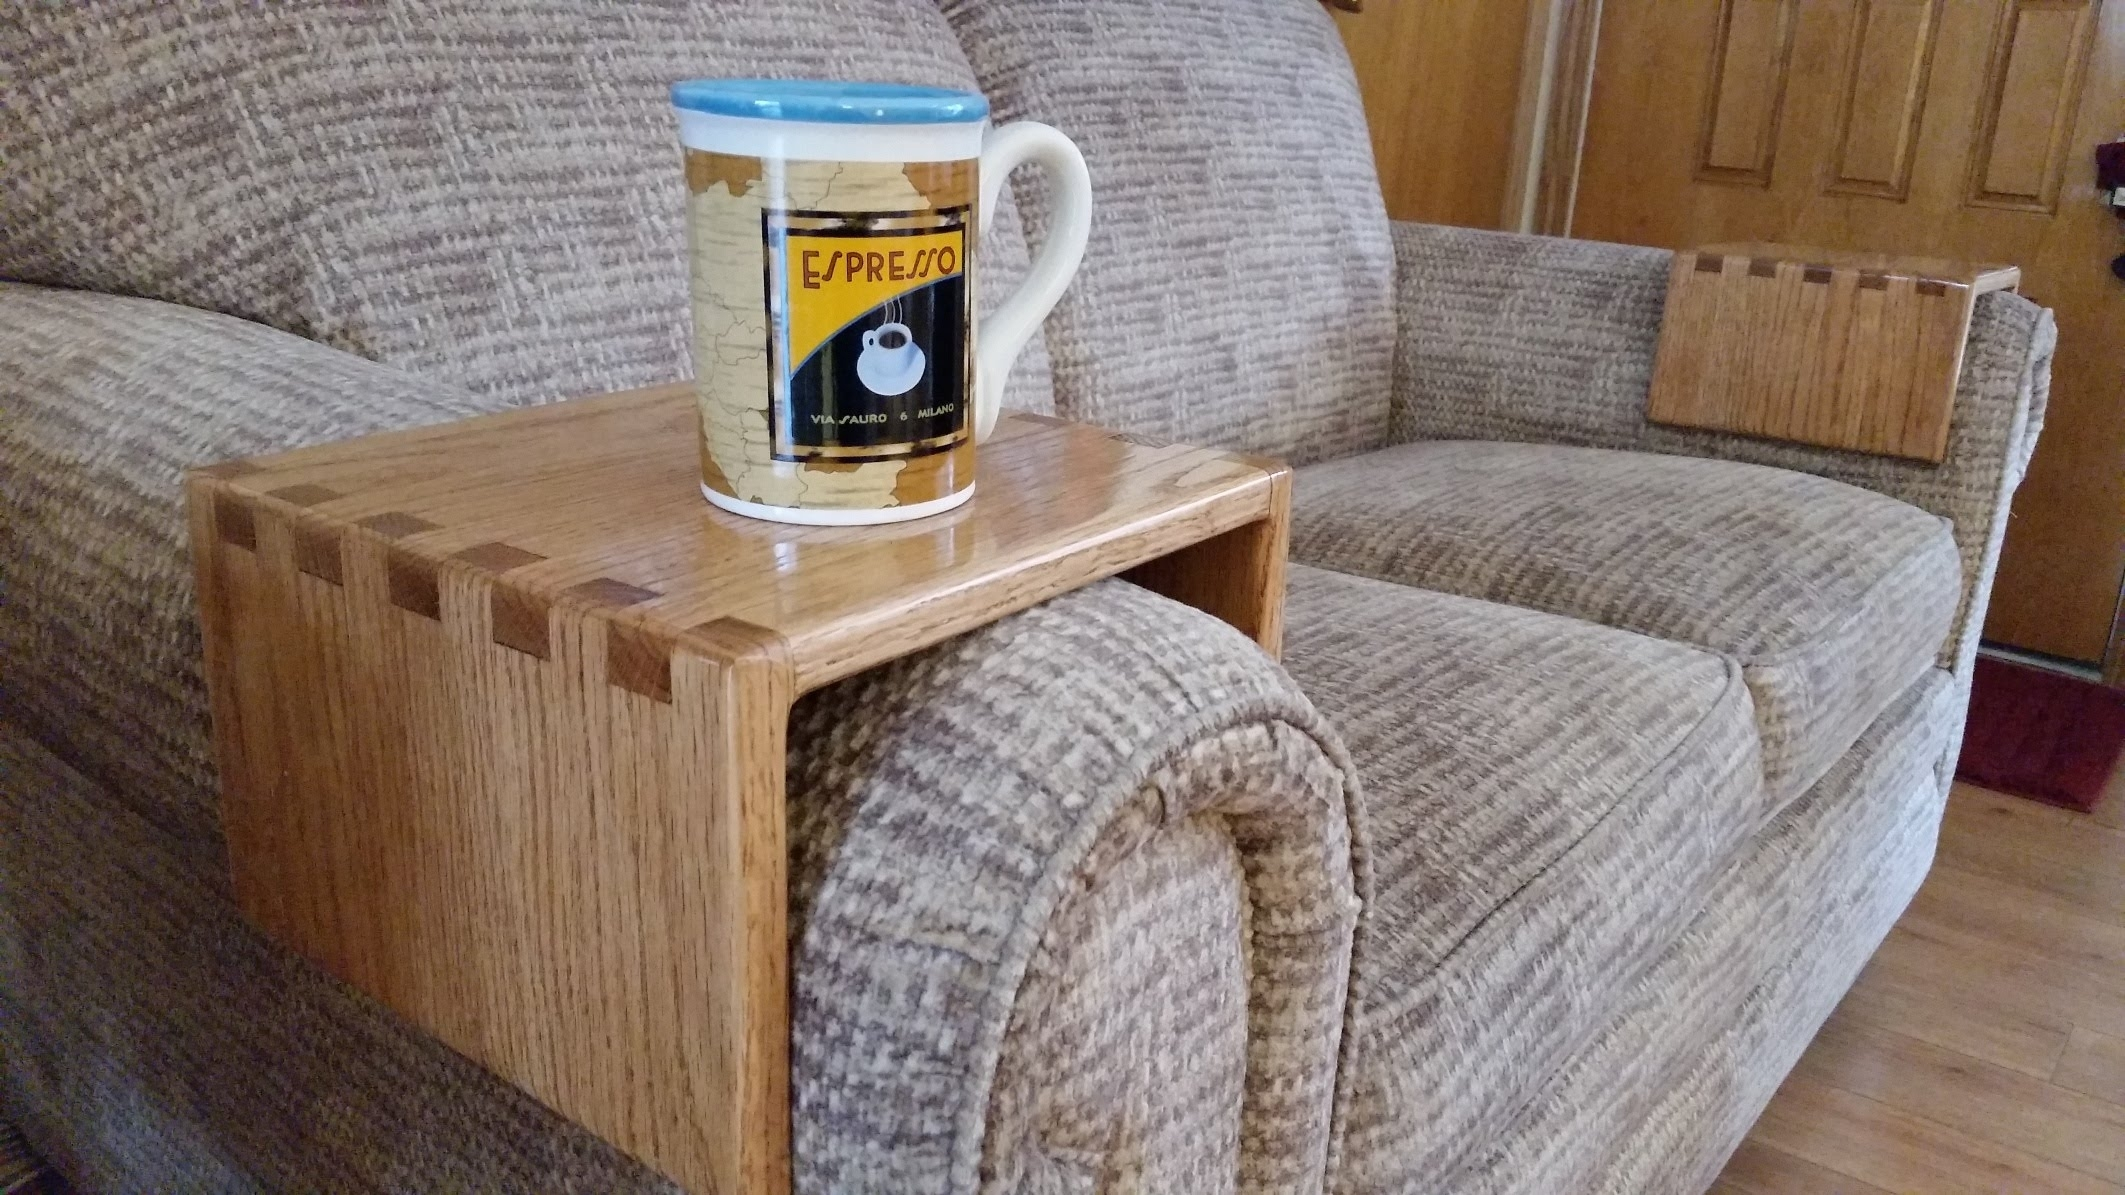 Diy – Sofa Drink Holder Using Simple Box Joints – Youtube With Regard To Sofas With Drink Tables (View 4 of 10)